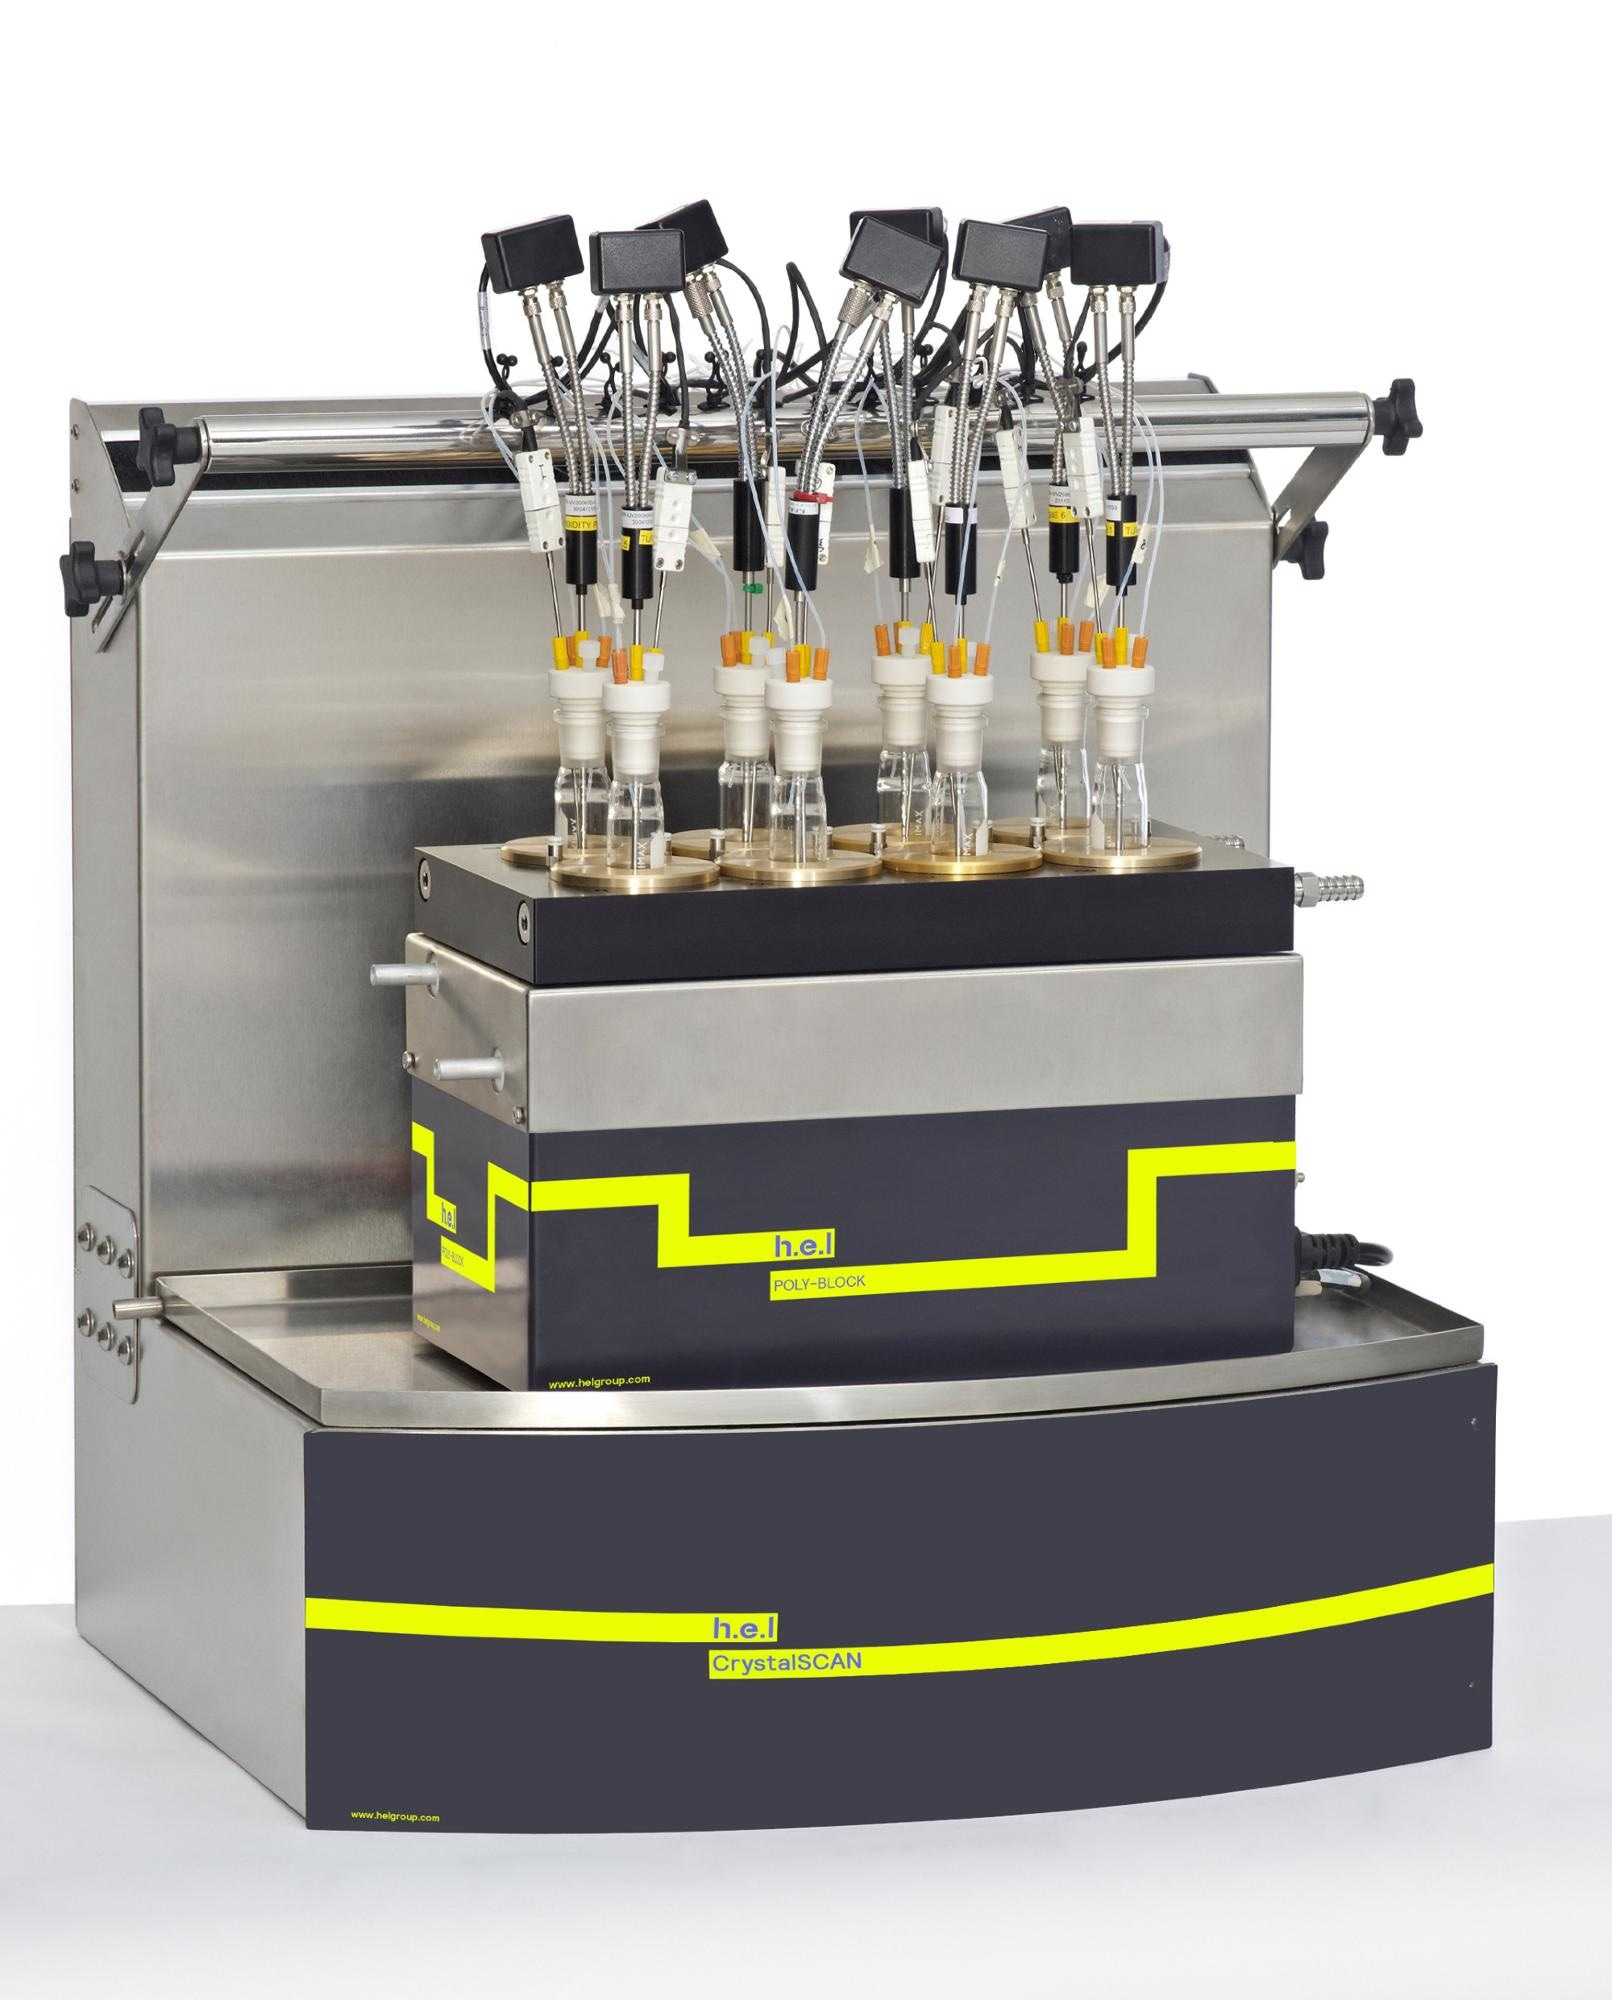 CrystalSCAN: A Benchtop, Automated Parallel Crystallization Monitoring Platform